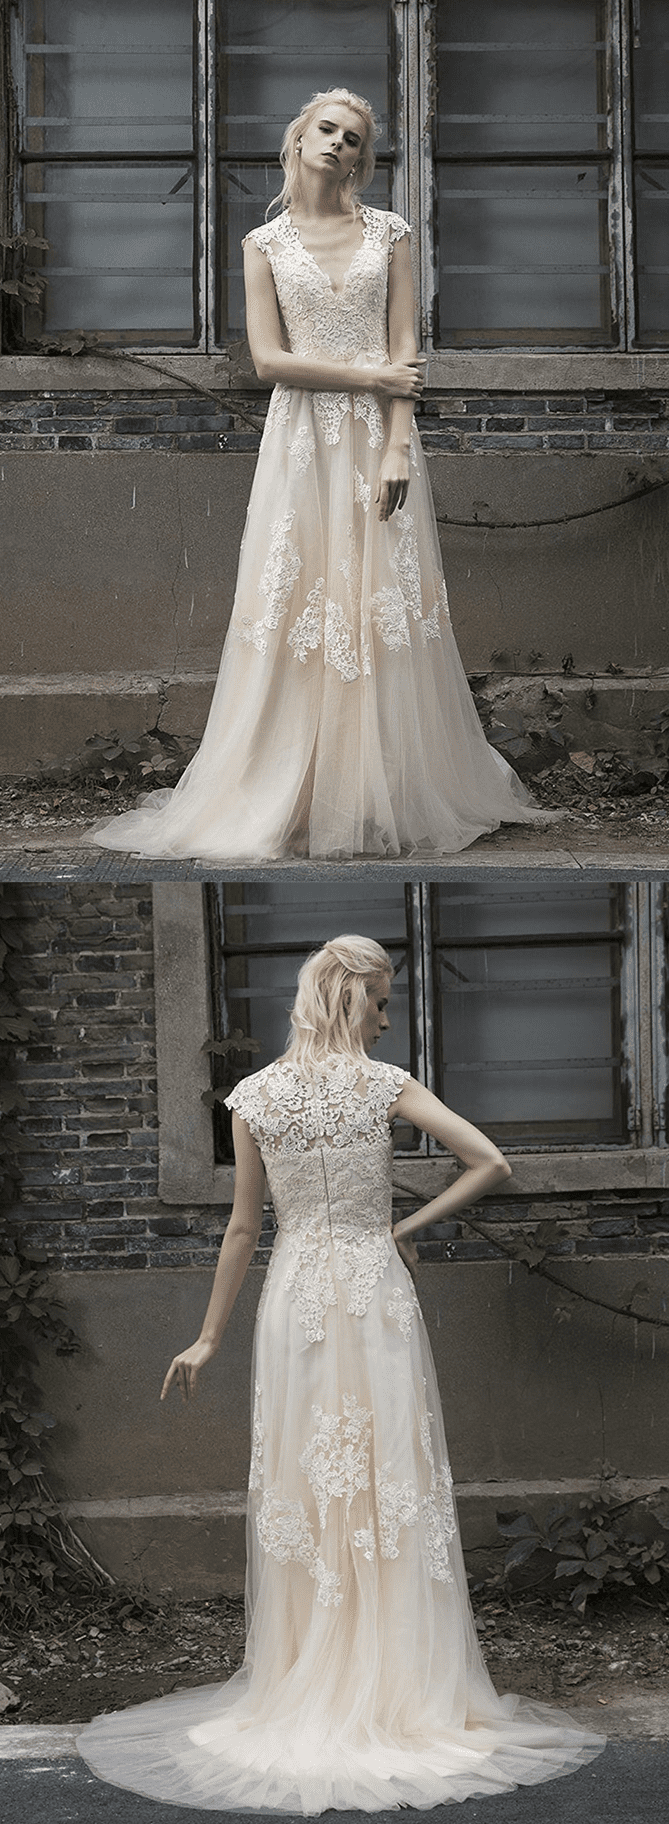 Lace cap sleeve a line wedding dress   Chic Wedding Gowns You Can Order on Amazon  AMAZON WEDDING